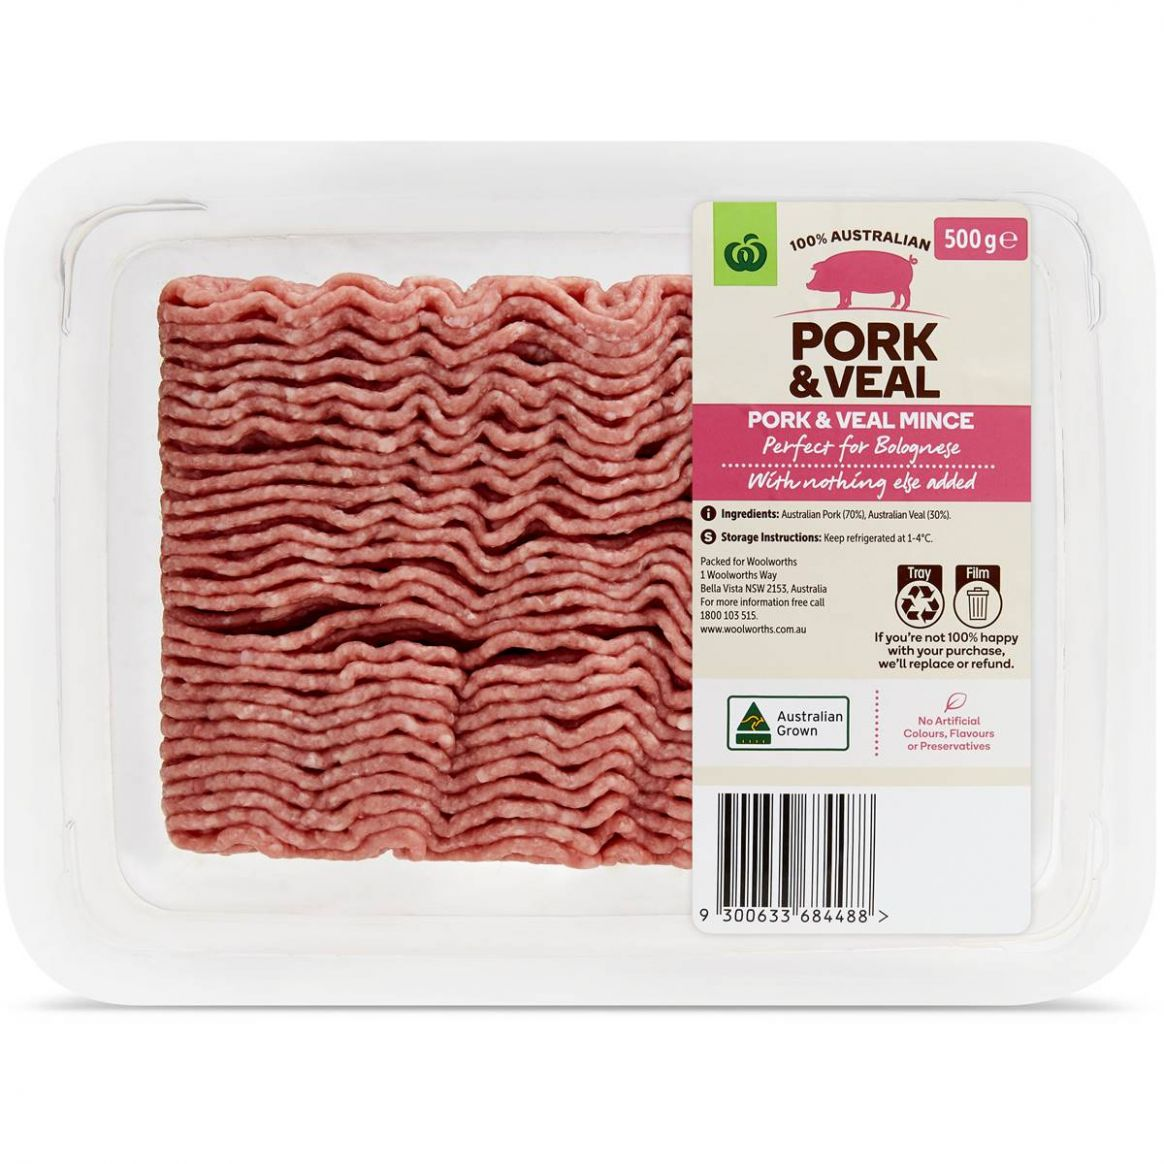 Woolworths Pork & Veal Mince 11g | Woolworths